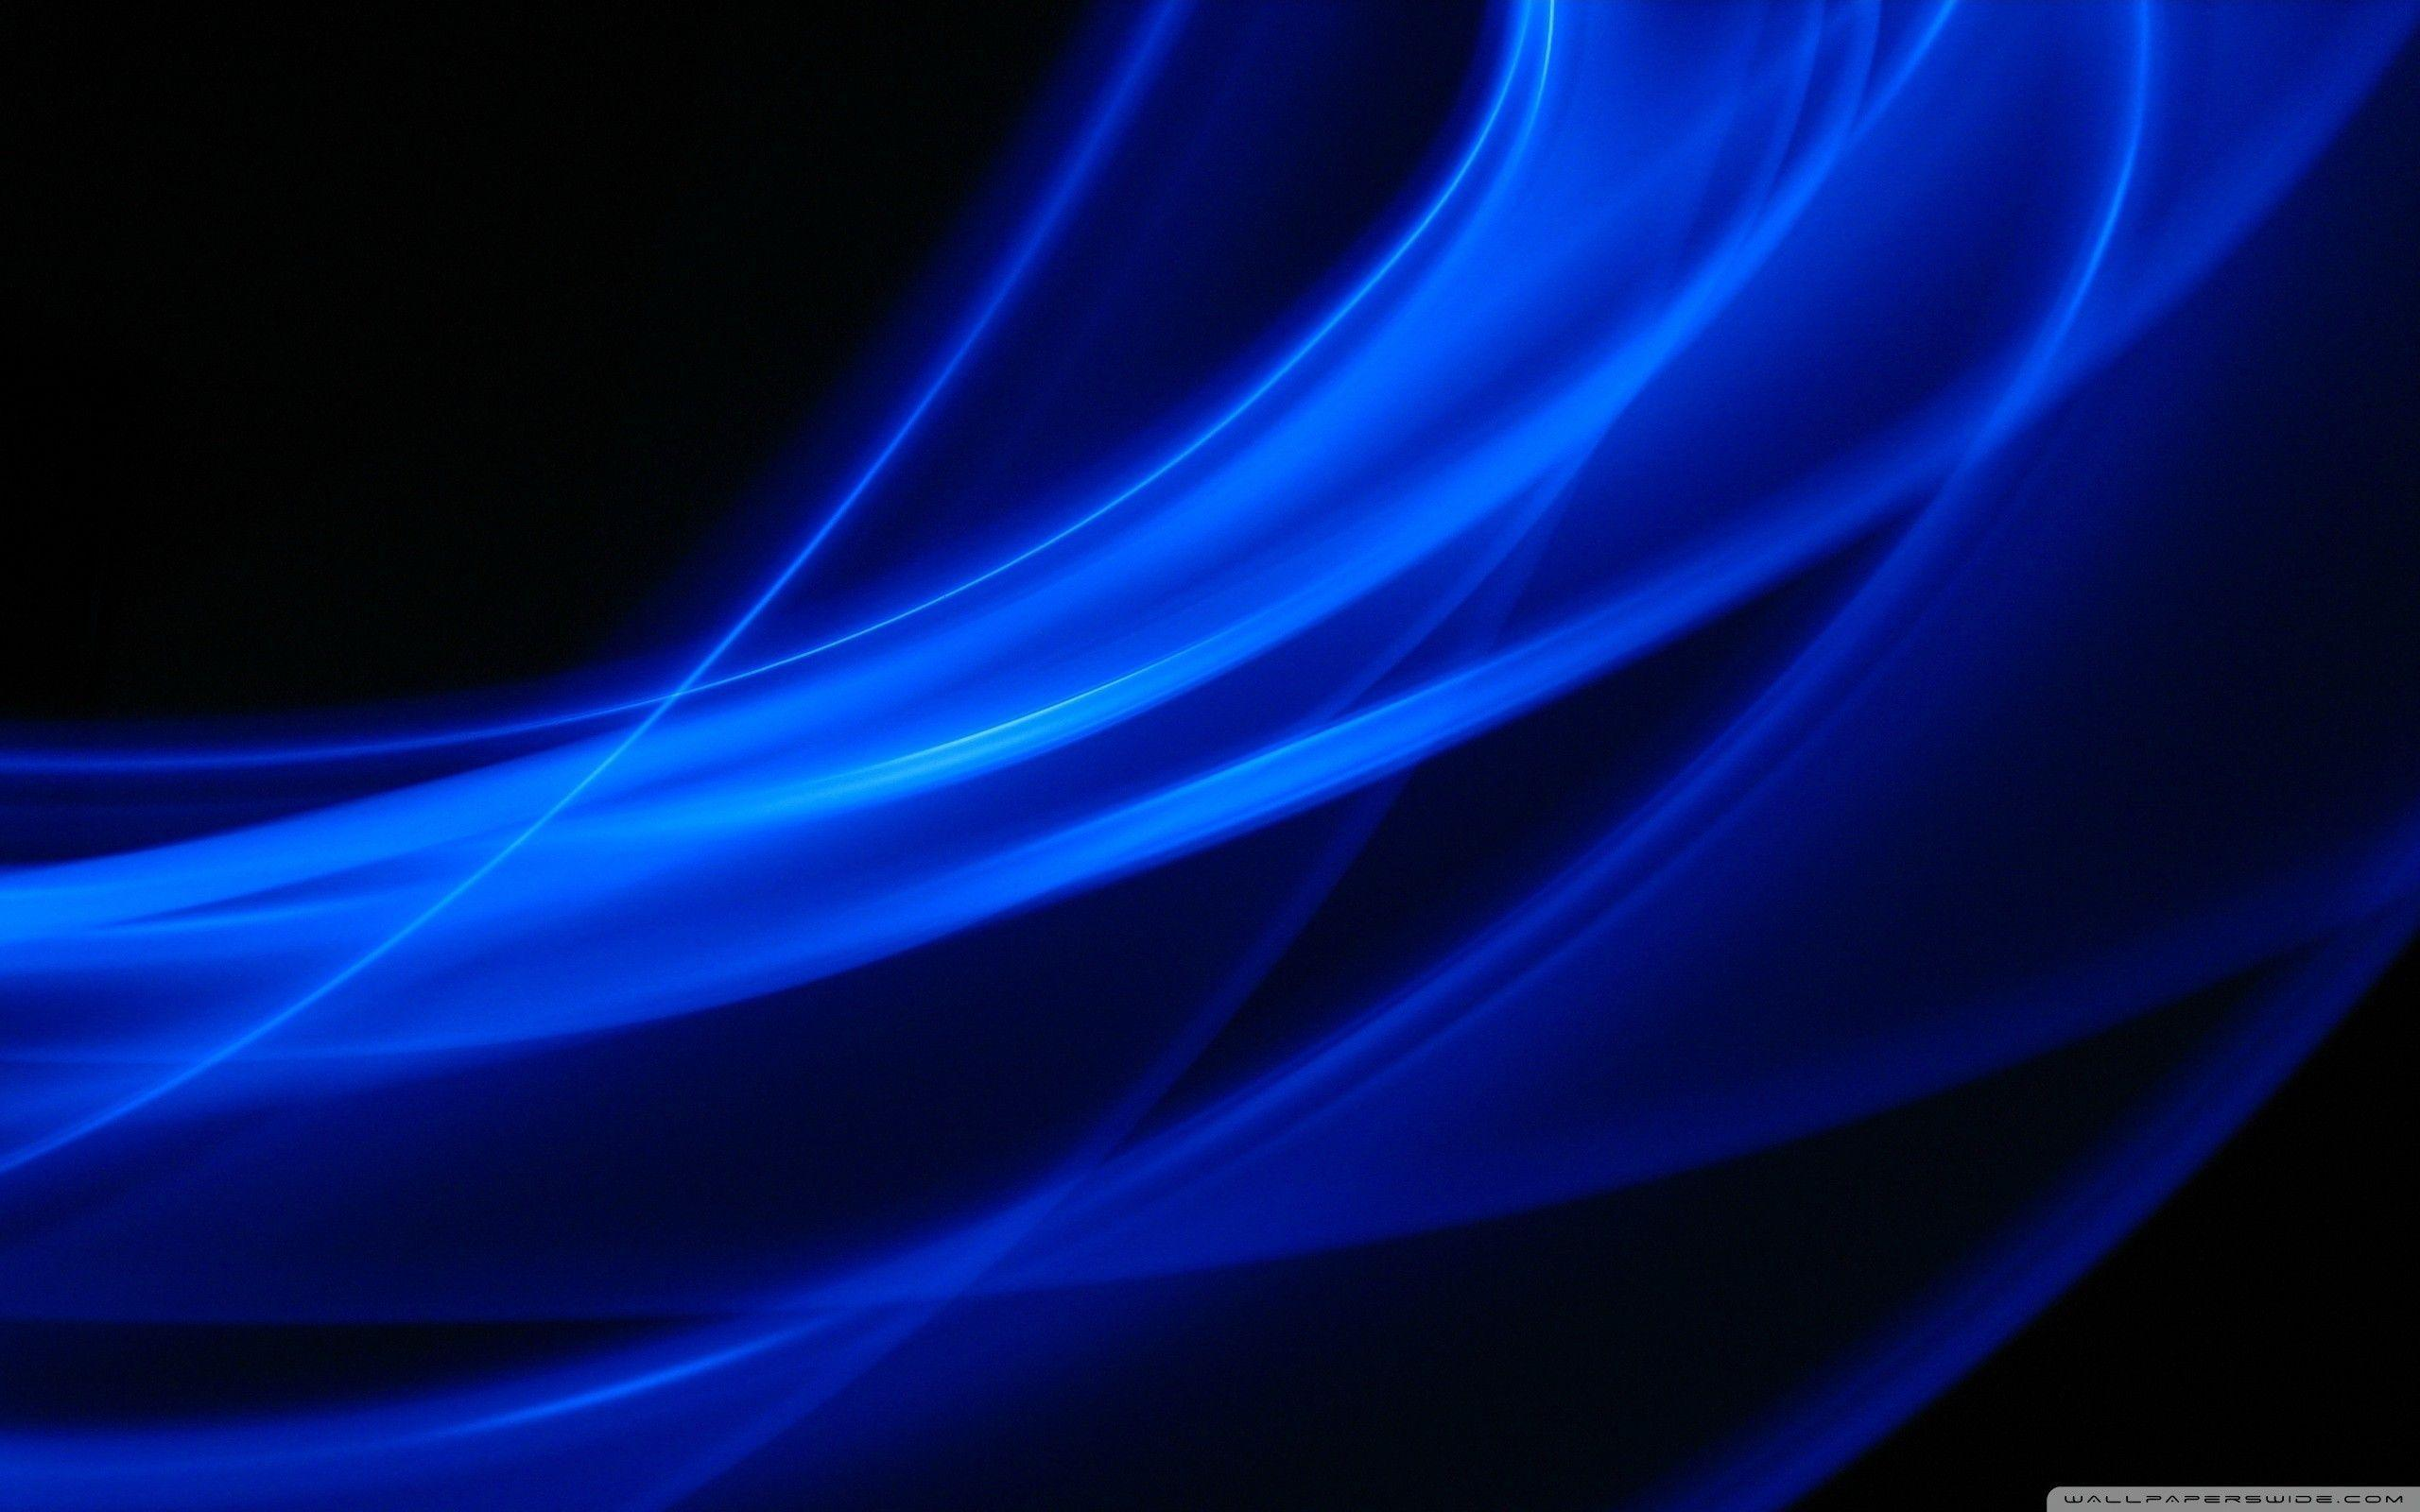 Dark Blue Backgrounds Image 2560x1600